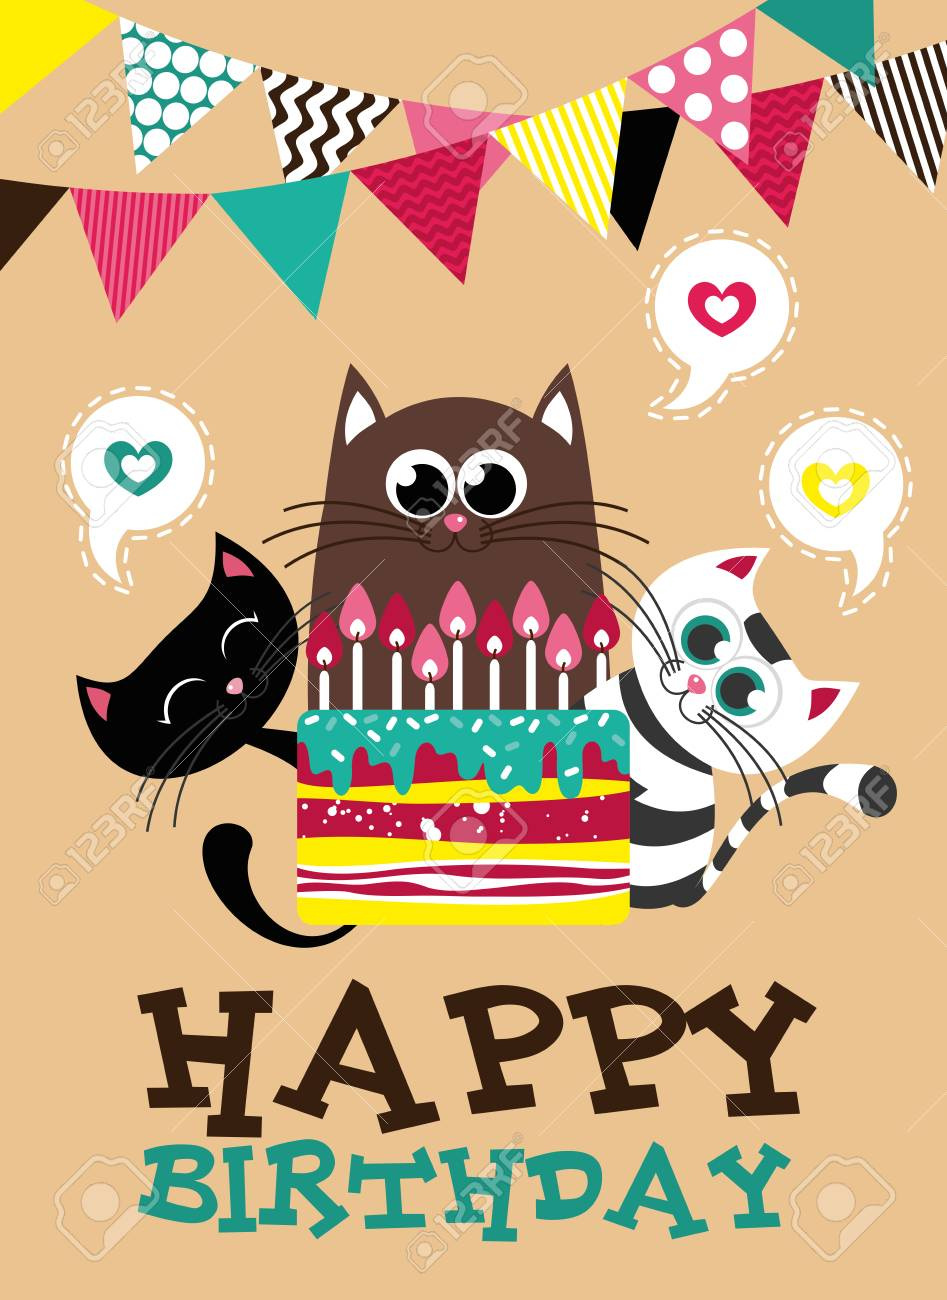 creative happy birthday posters ; 81800032-cute-creative-cards-templates-with-happy-birthday-theme-design-hand-drawn-card-for-birthday-annivers